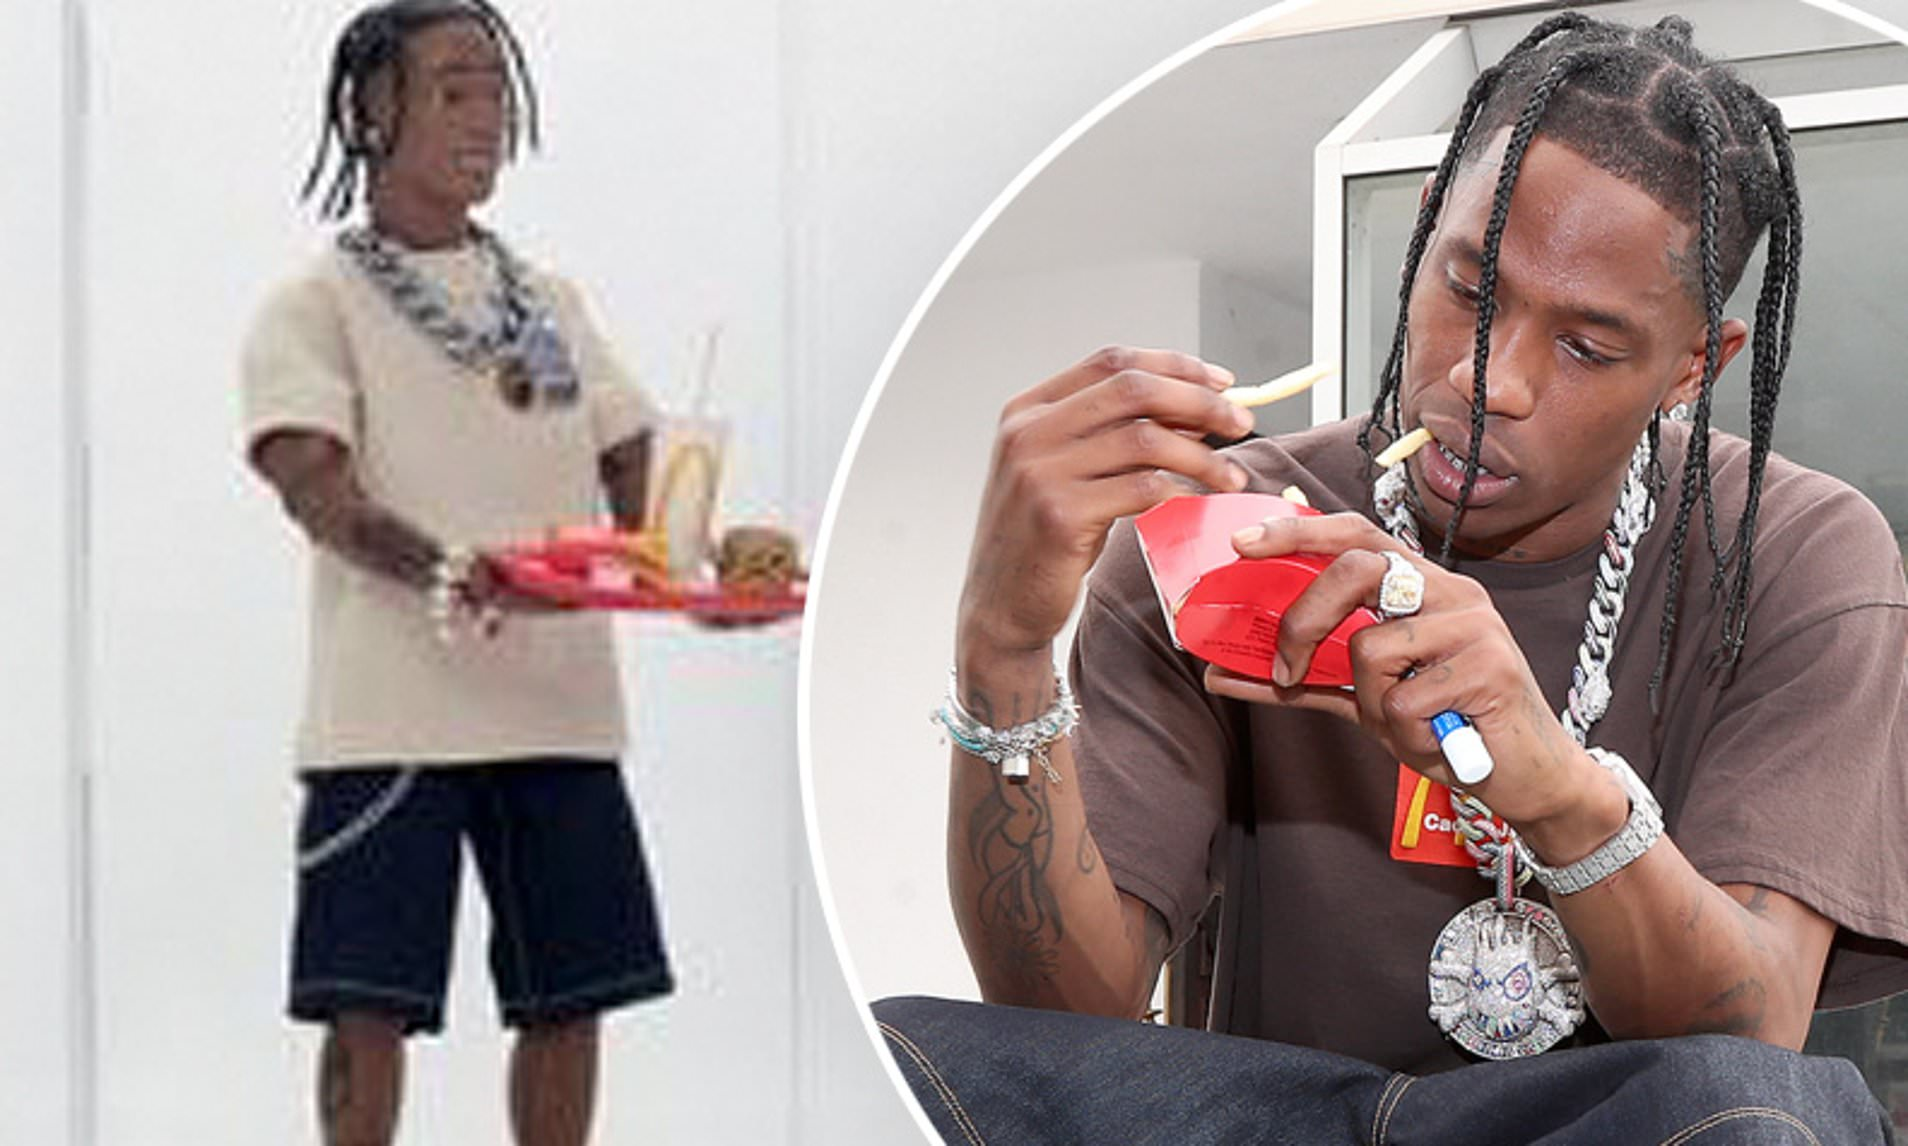 Travis Scott S Mcdonald S Action Figure Is Selling For A Whopping 55 000 On The Resale Market Daily Mail Online